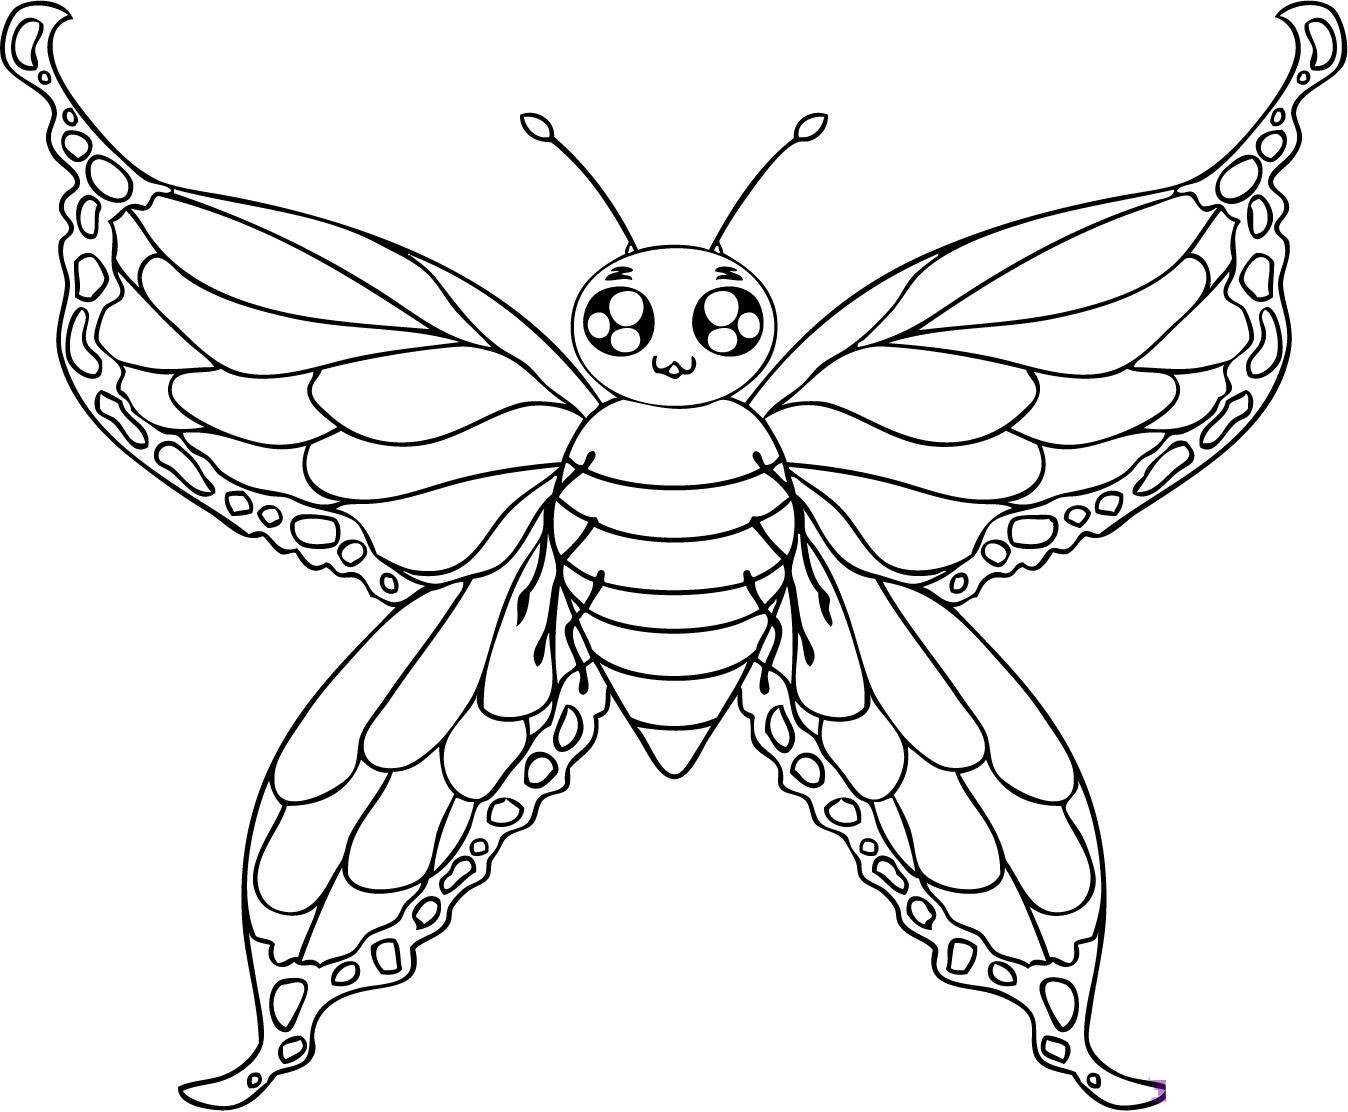 coloring images of butterfly cute butterfly coloring pages getcoloringpagescom butterfly coloring images of